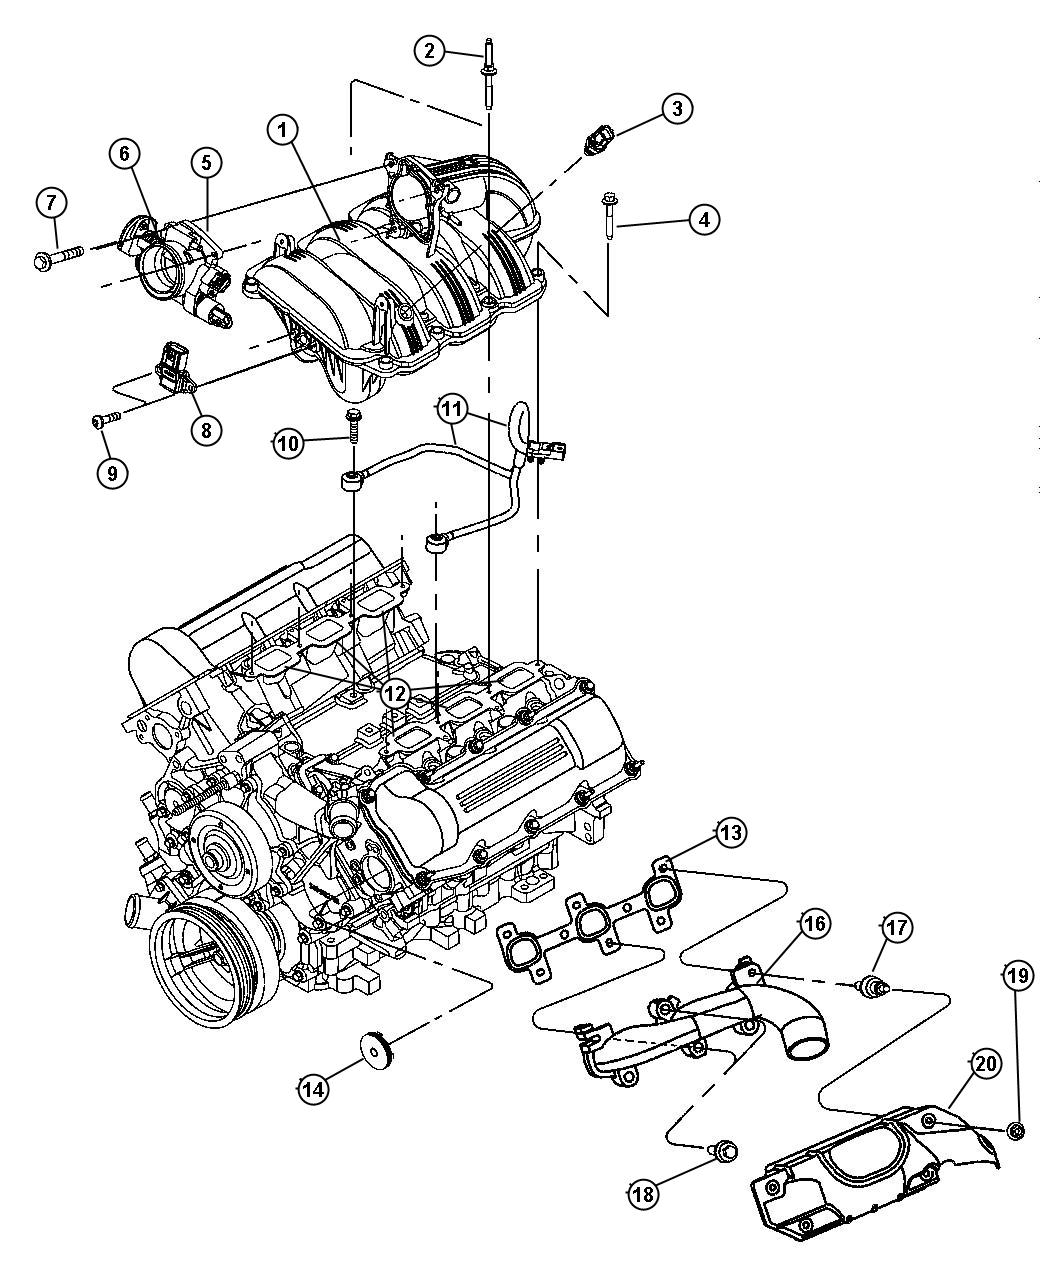 search dodge dakota engine diagram  search  get free image